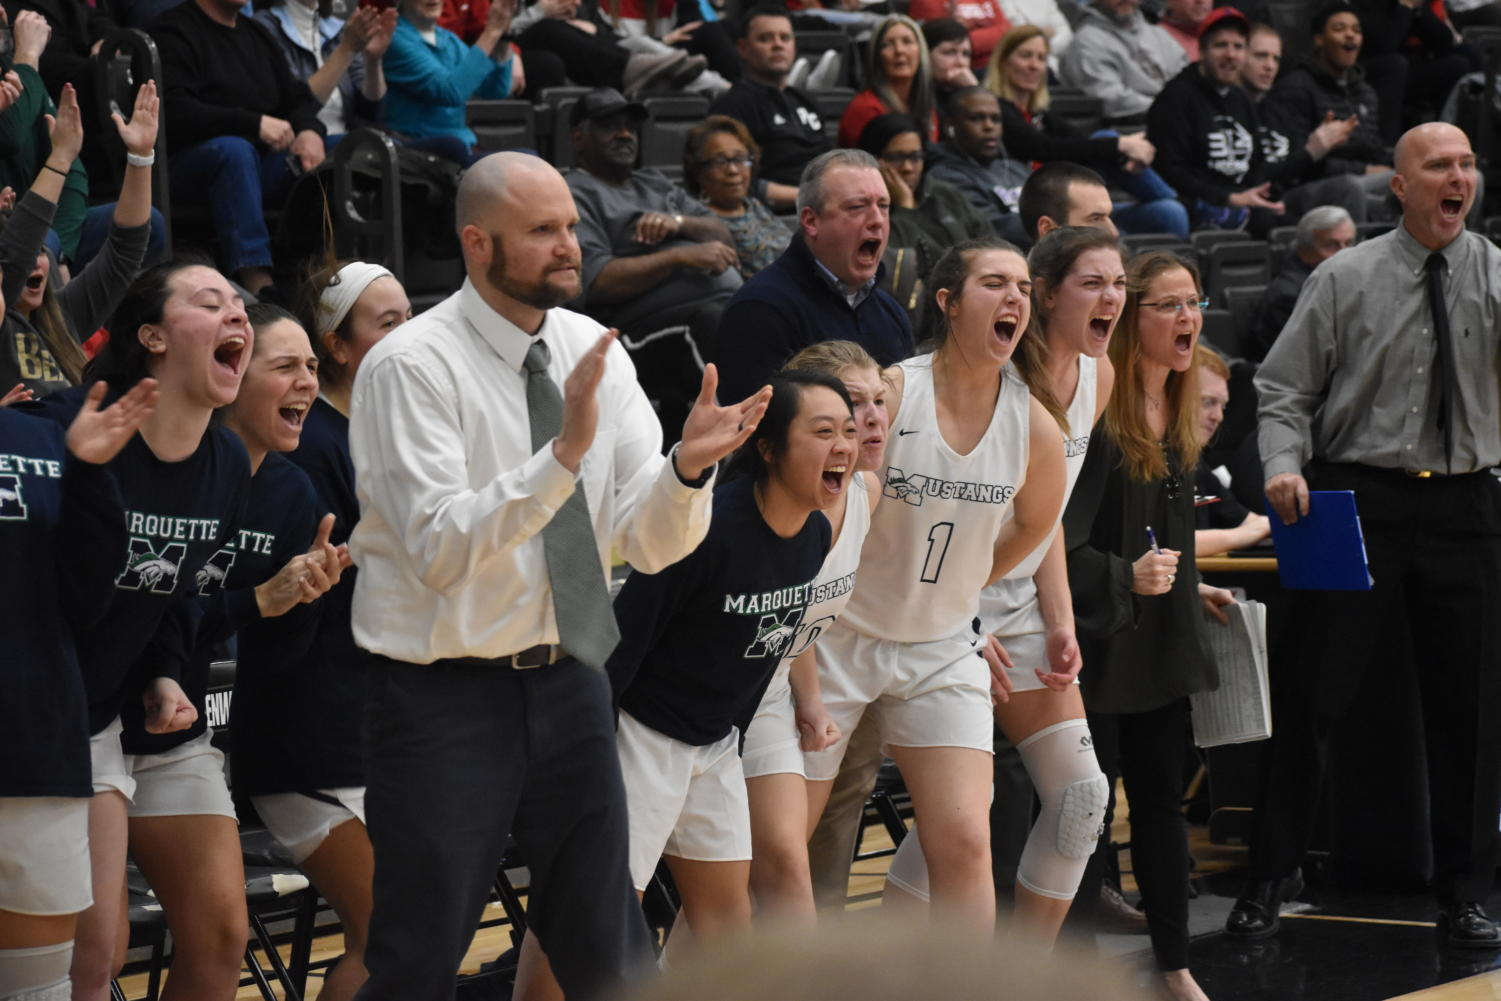 After+Kennedi+Watkins%2C+sophomore%2C+scores%2C+the+bench+erupted+in+cheers.+Watkin%E2%80%99s+basket+put+them+up+by+five+points.+%E2%80%9CThe+bench+is+always+so+hype%2C+especially+when+someone+scores%2C%E2%80%9D+Kaitlyn+Lee%2C+senior%2C+said.+